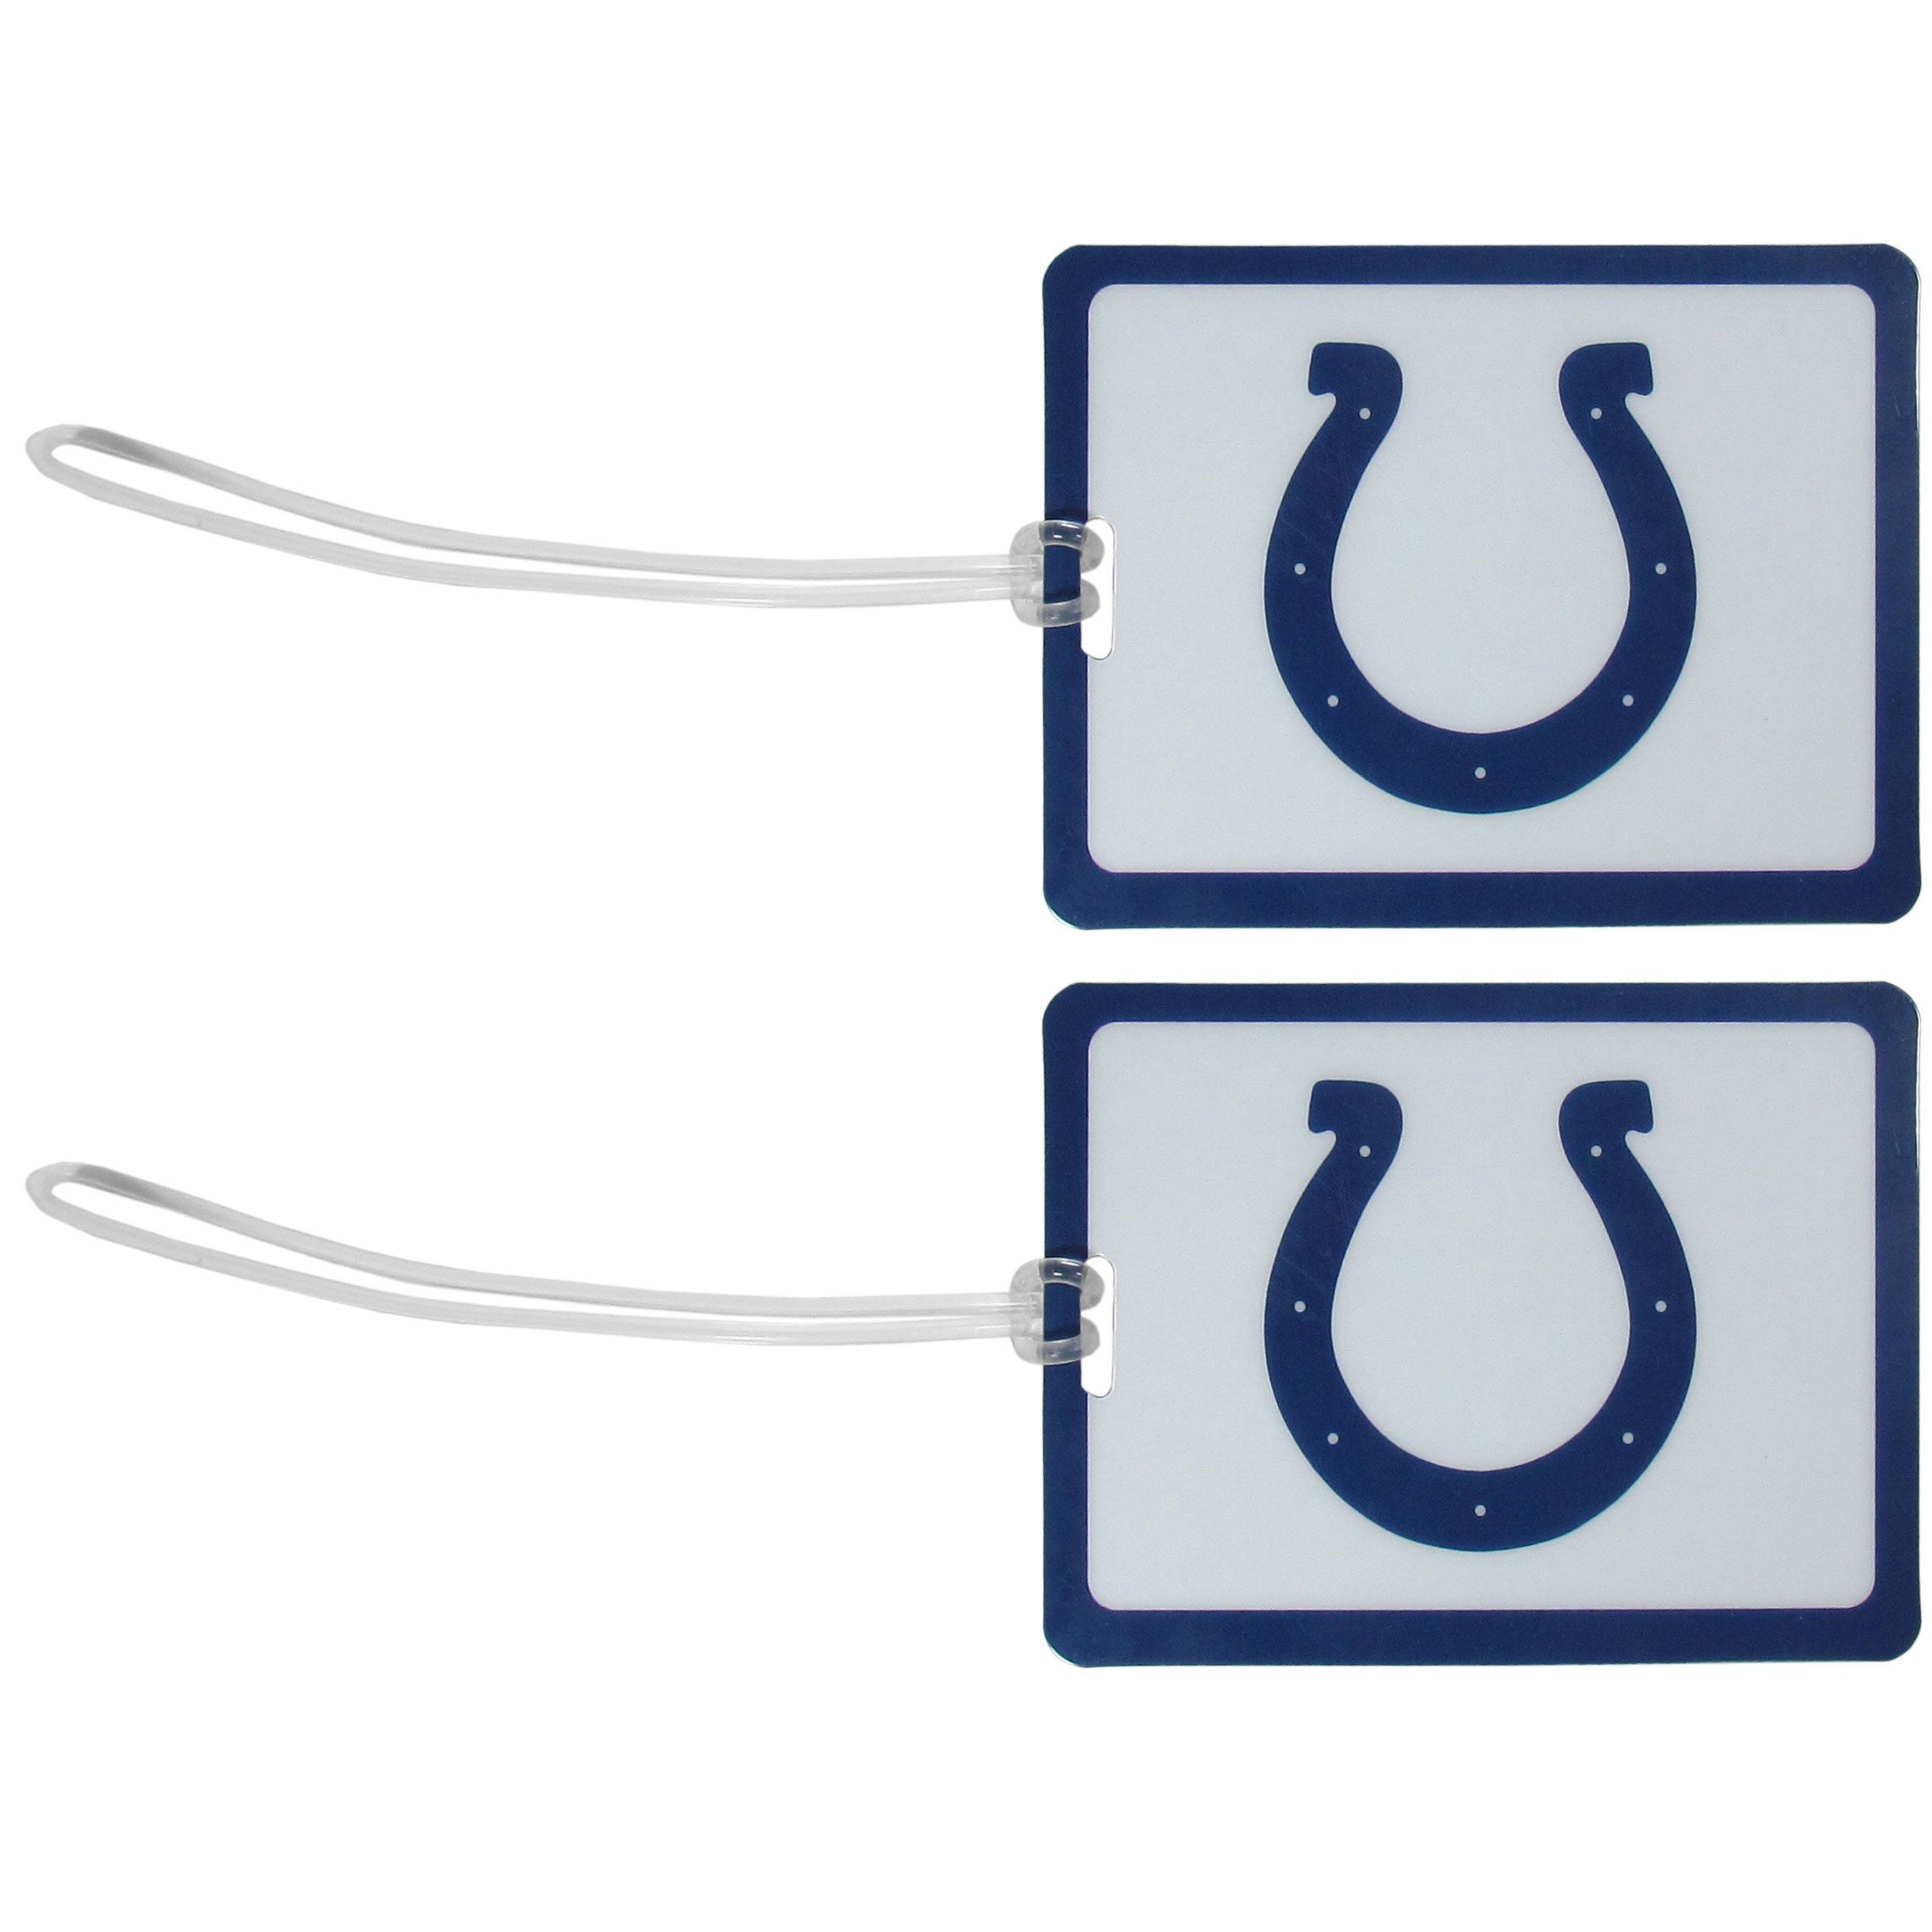 Indianapolis Colts Vinyl Luggage Tag, 2pk - Tired of trying to spot your suitcase or bag in a sea of luggage? Try our large and colorful Indianapolis Colts luggage tags. The tag is 4x3 inches and has a 5 inch cord to attach it easily to your bags, backpacks or luggage. The front of the tag features the team logo in a bright, team colored background and you can write you name, address and phone number on the back of the tag.